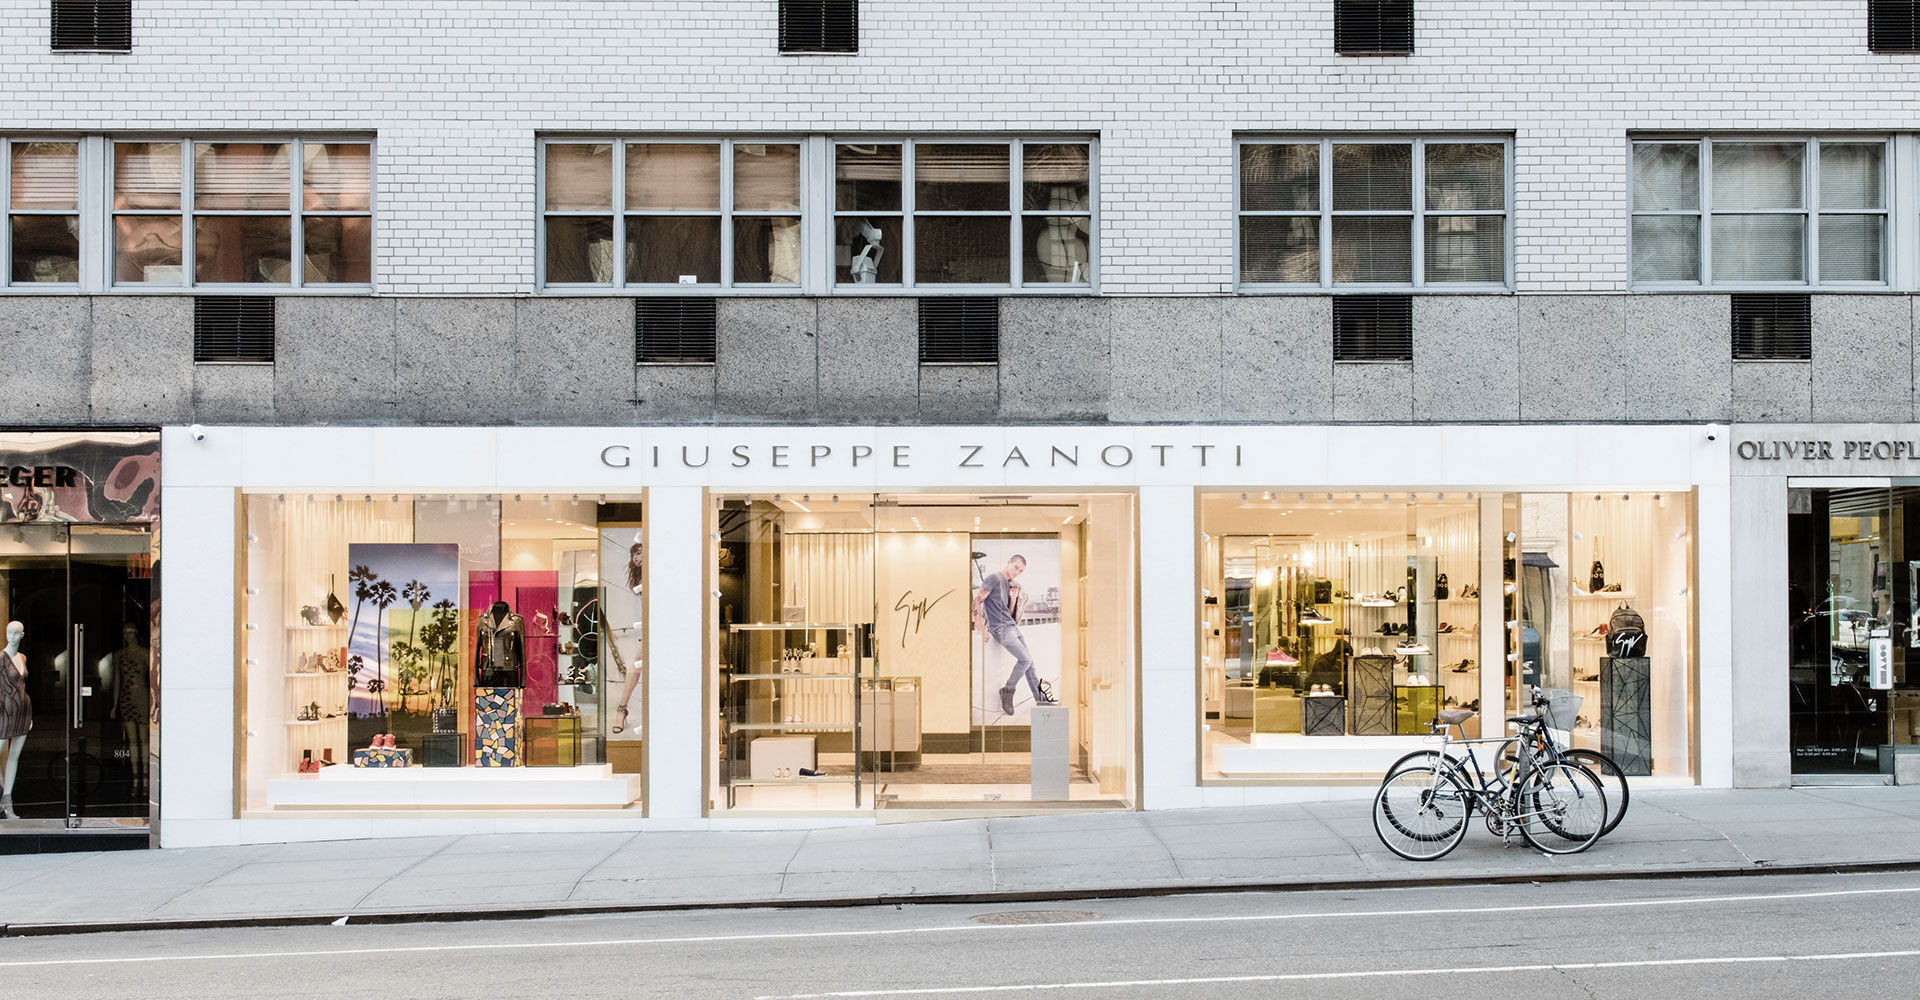 giuseppe_zanotti_design_new_york_slideshow